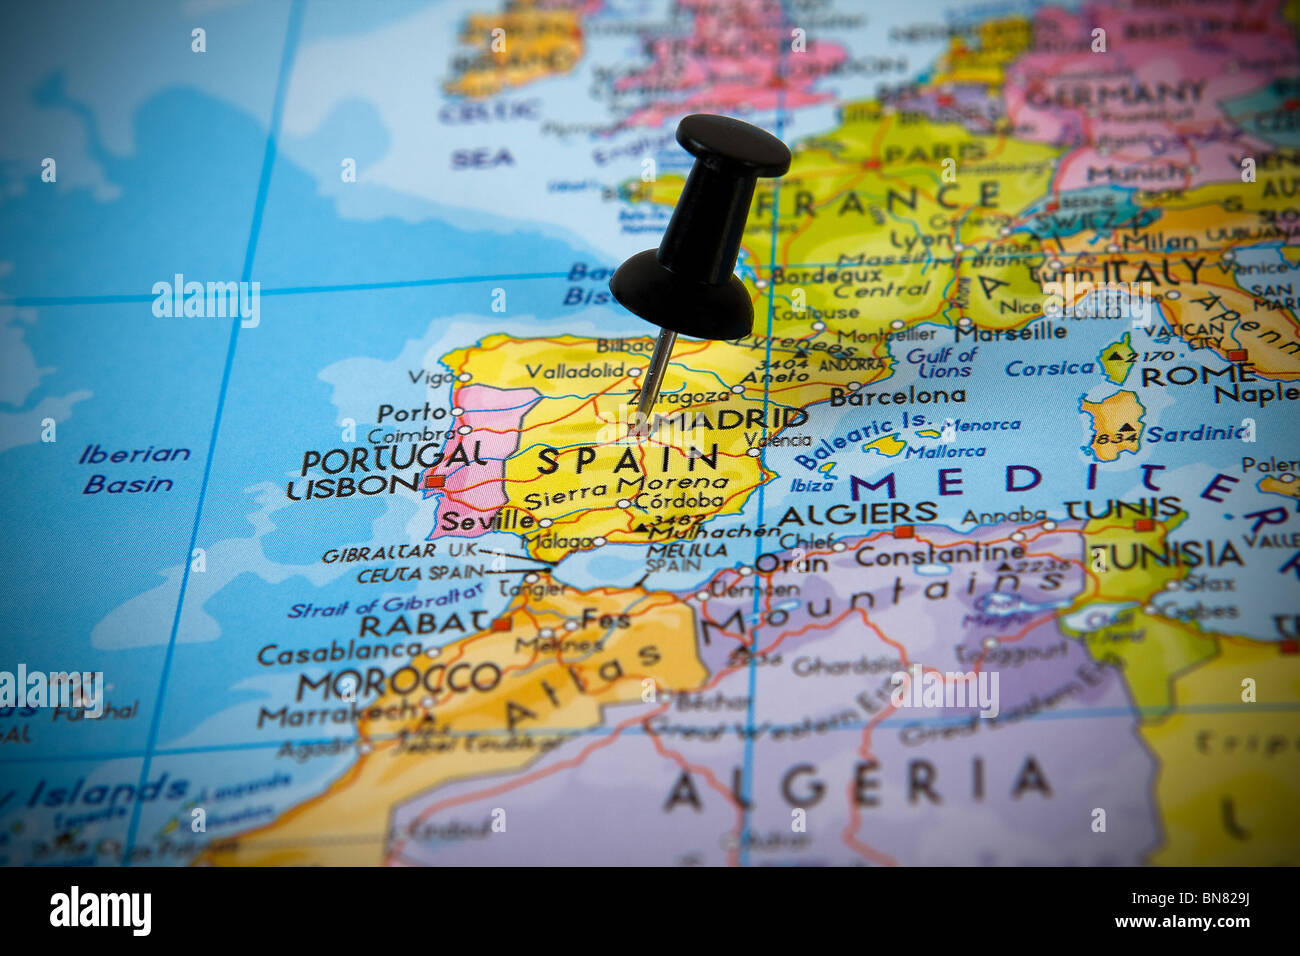 Small pin pointing on Madrid (Spain) in a map of Europe Stock Photo ...